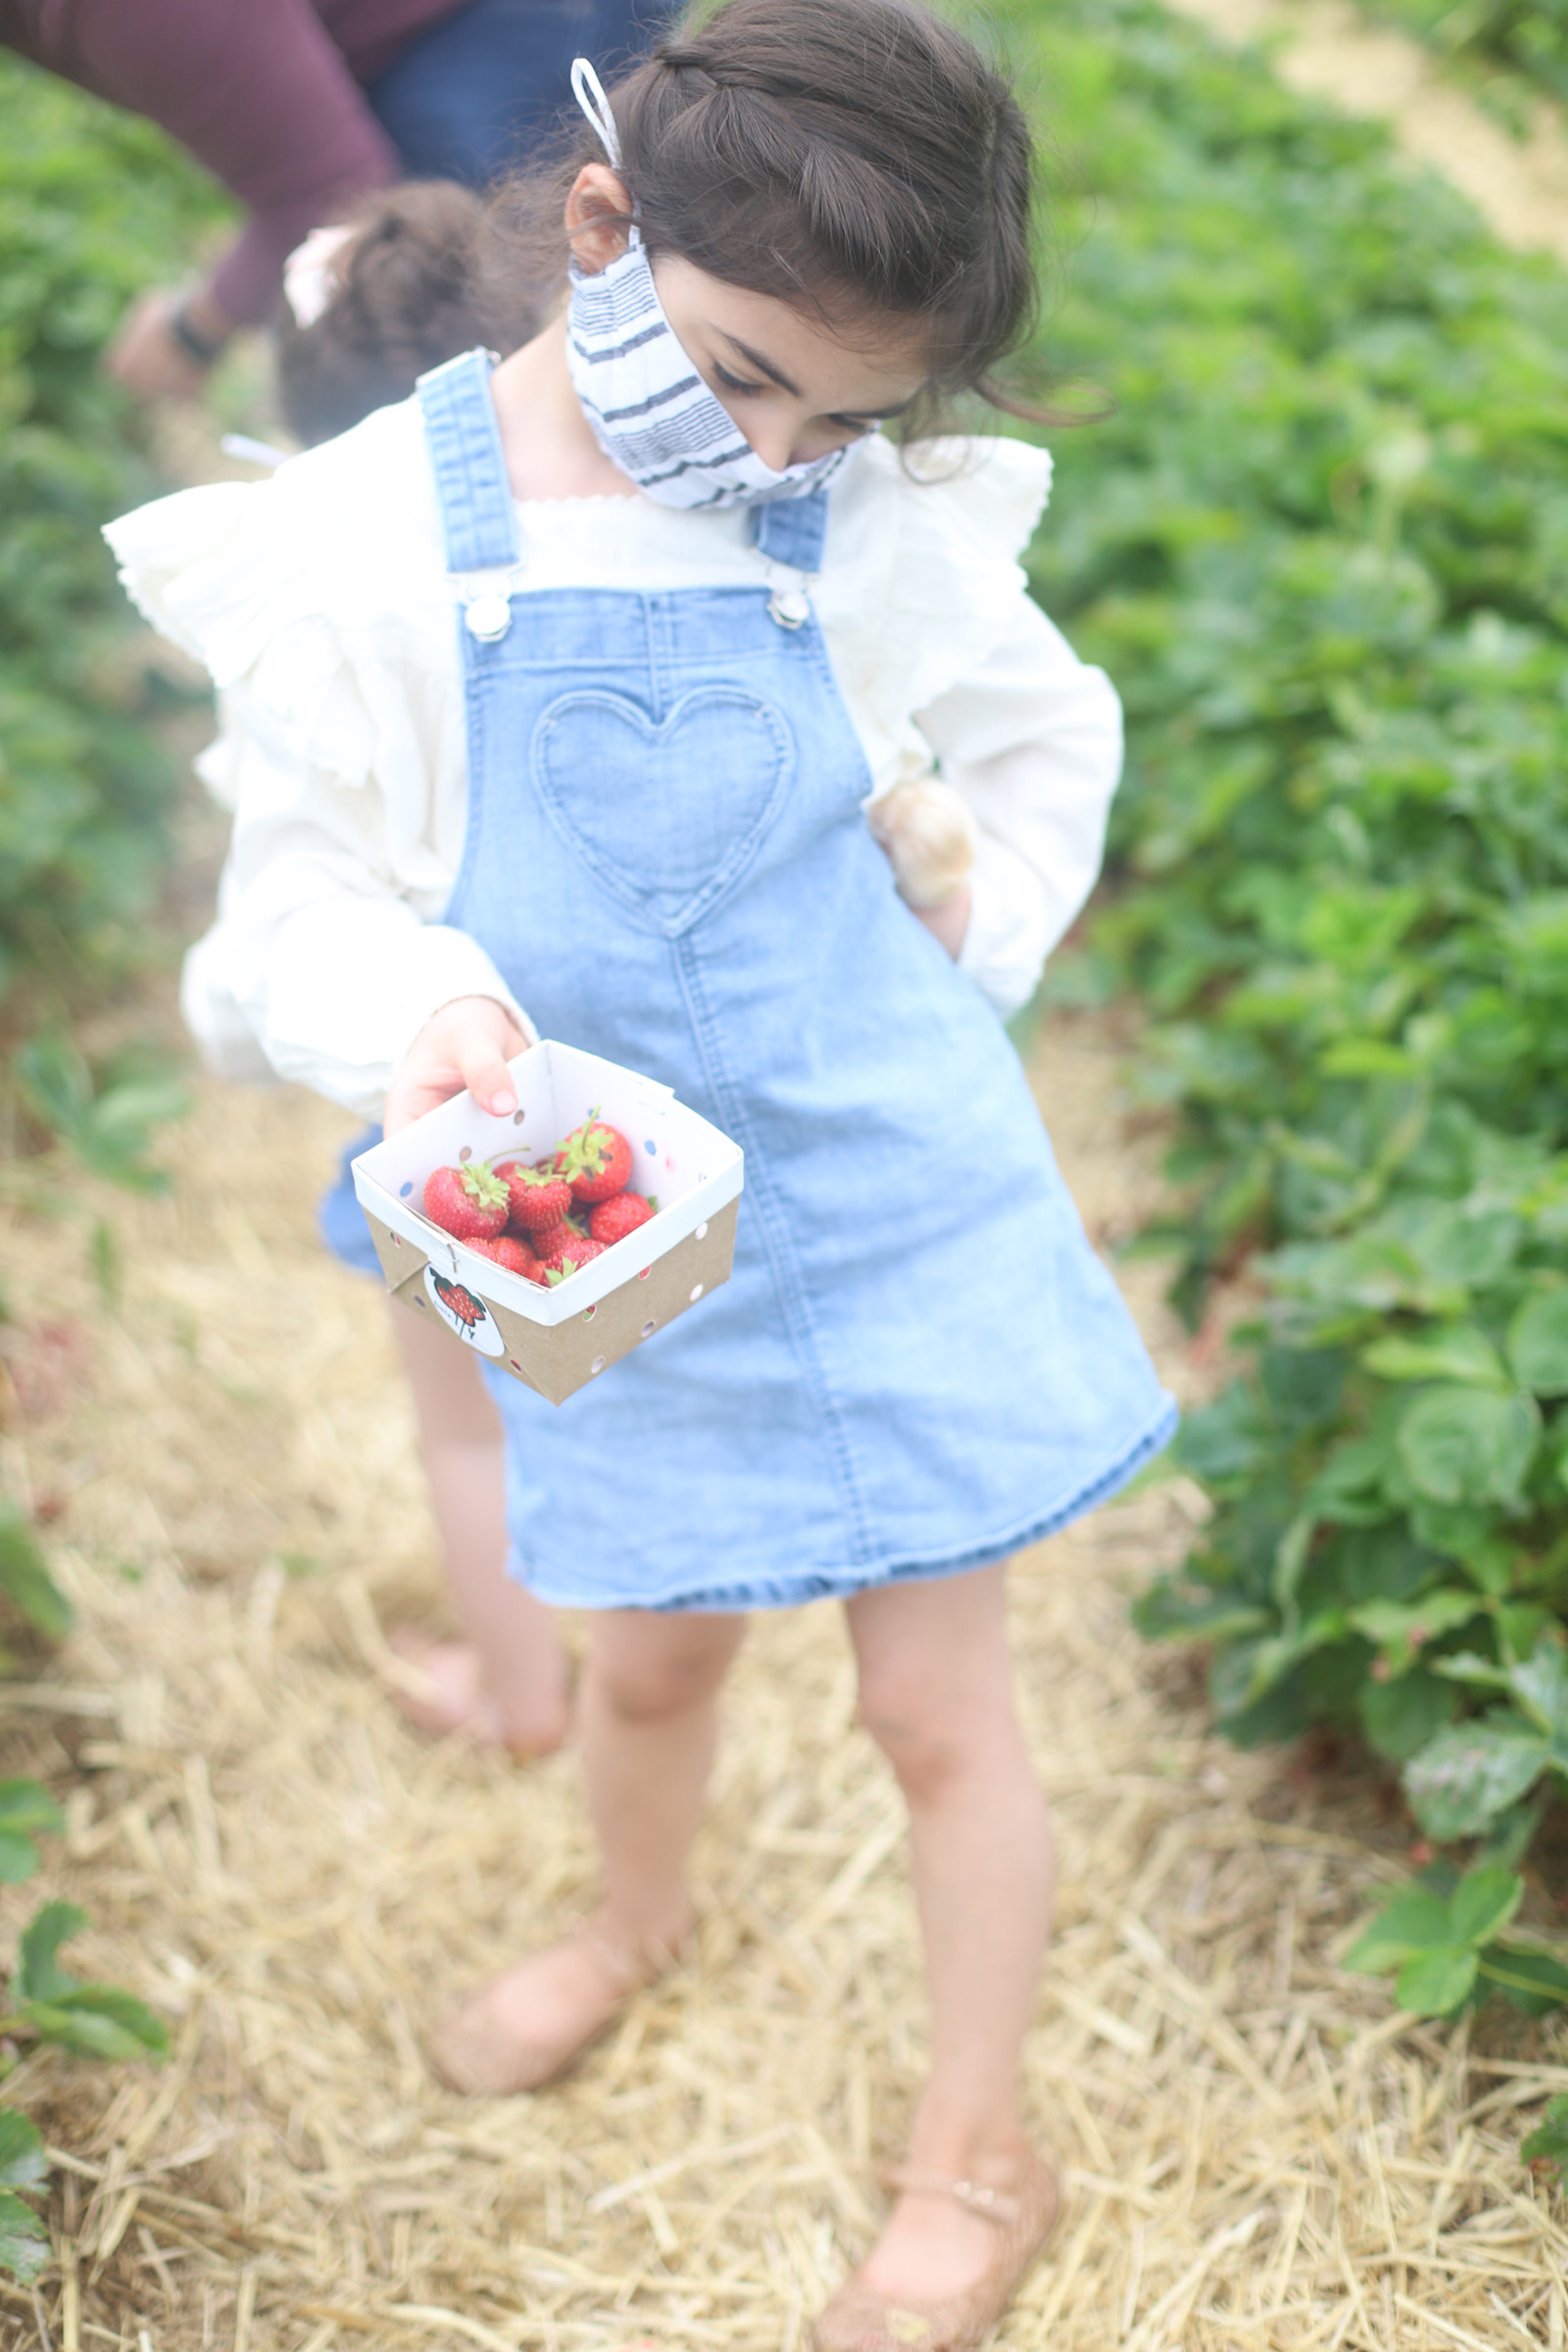 Blueberry and Strawberry Picking at Wards Berry Farm